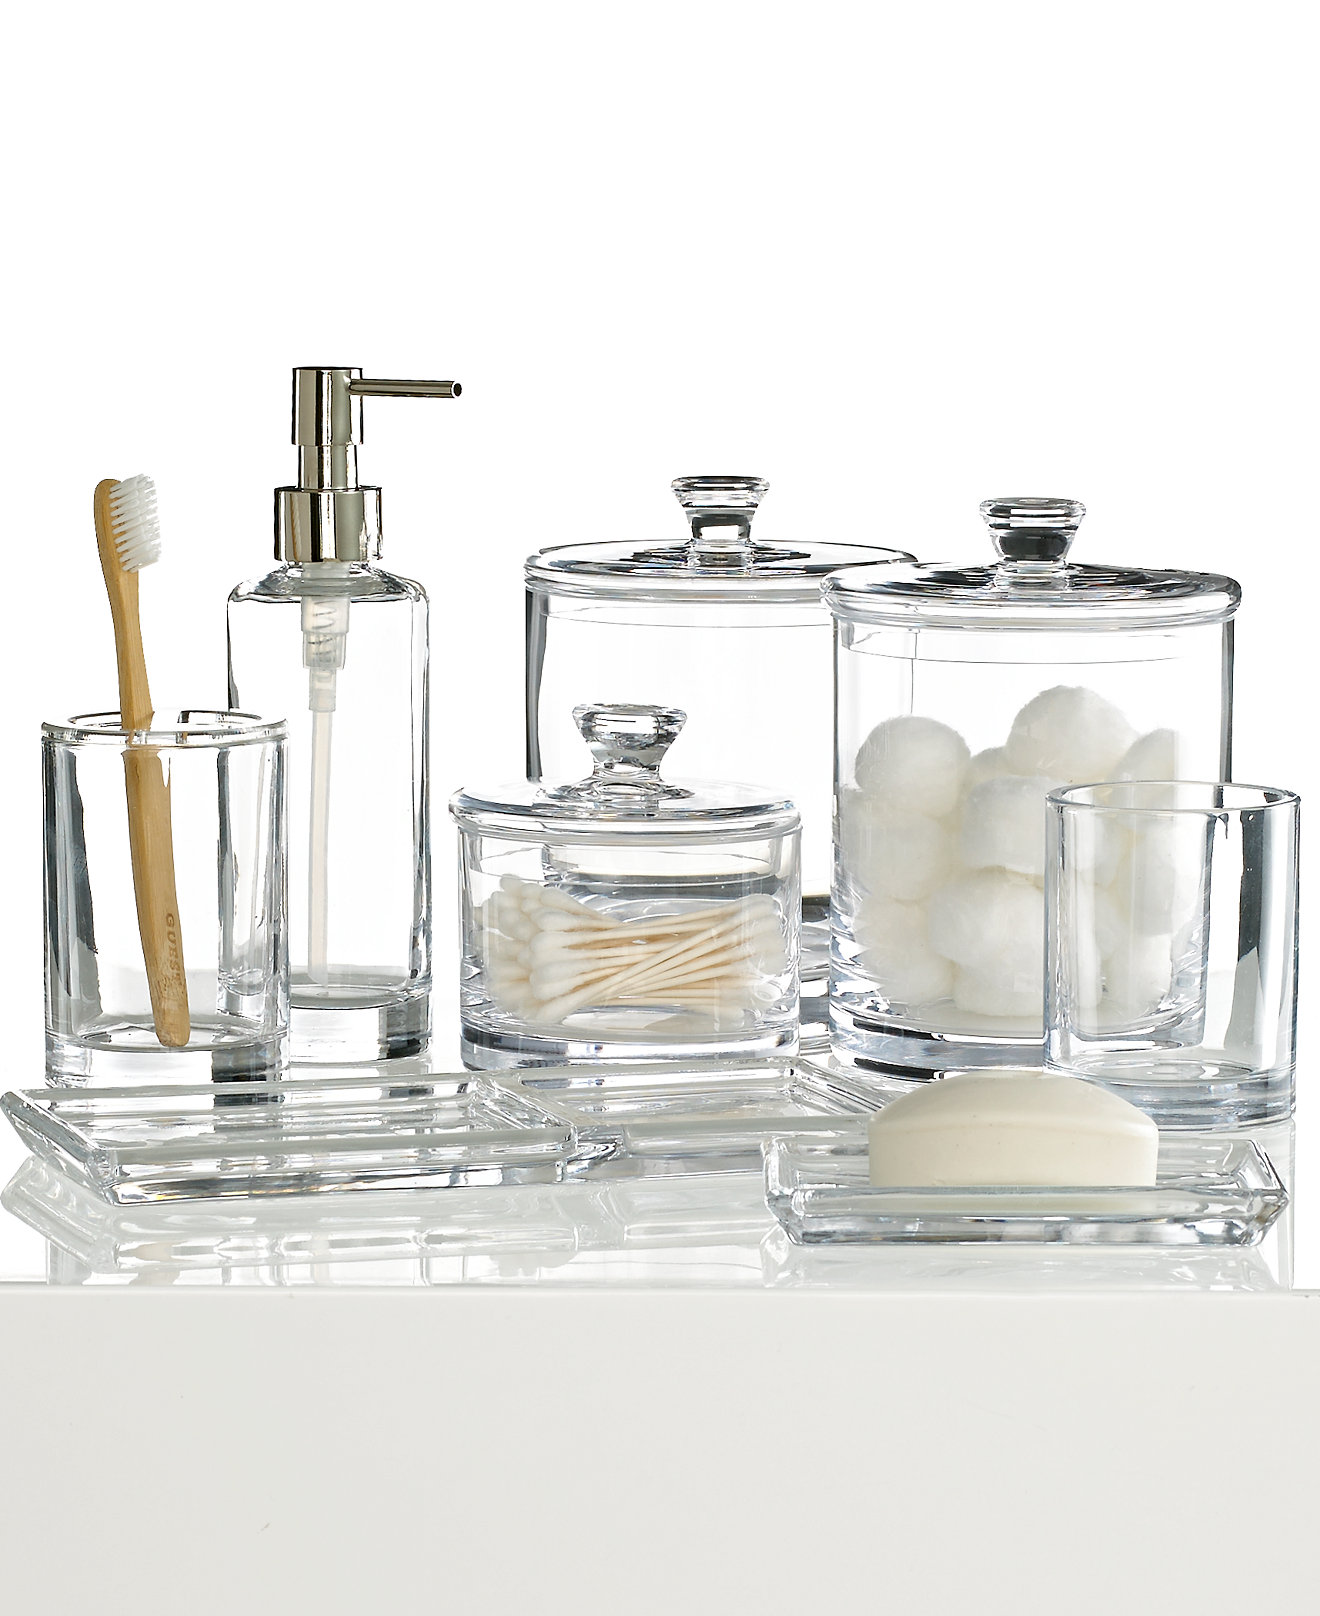 Bathroom fittings set - Hotel Collection Glass Bath Accessories Collection Only At Macy S Bathroom Accessories Bed Bath Macy S